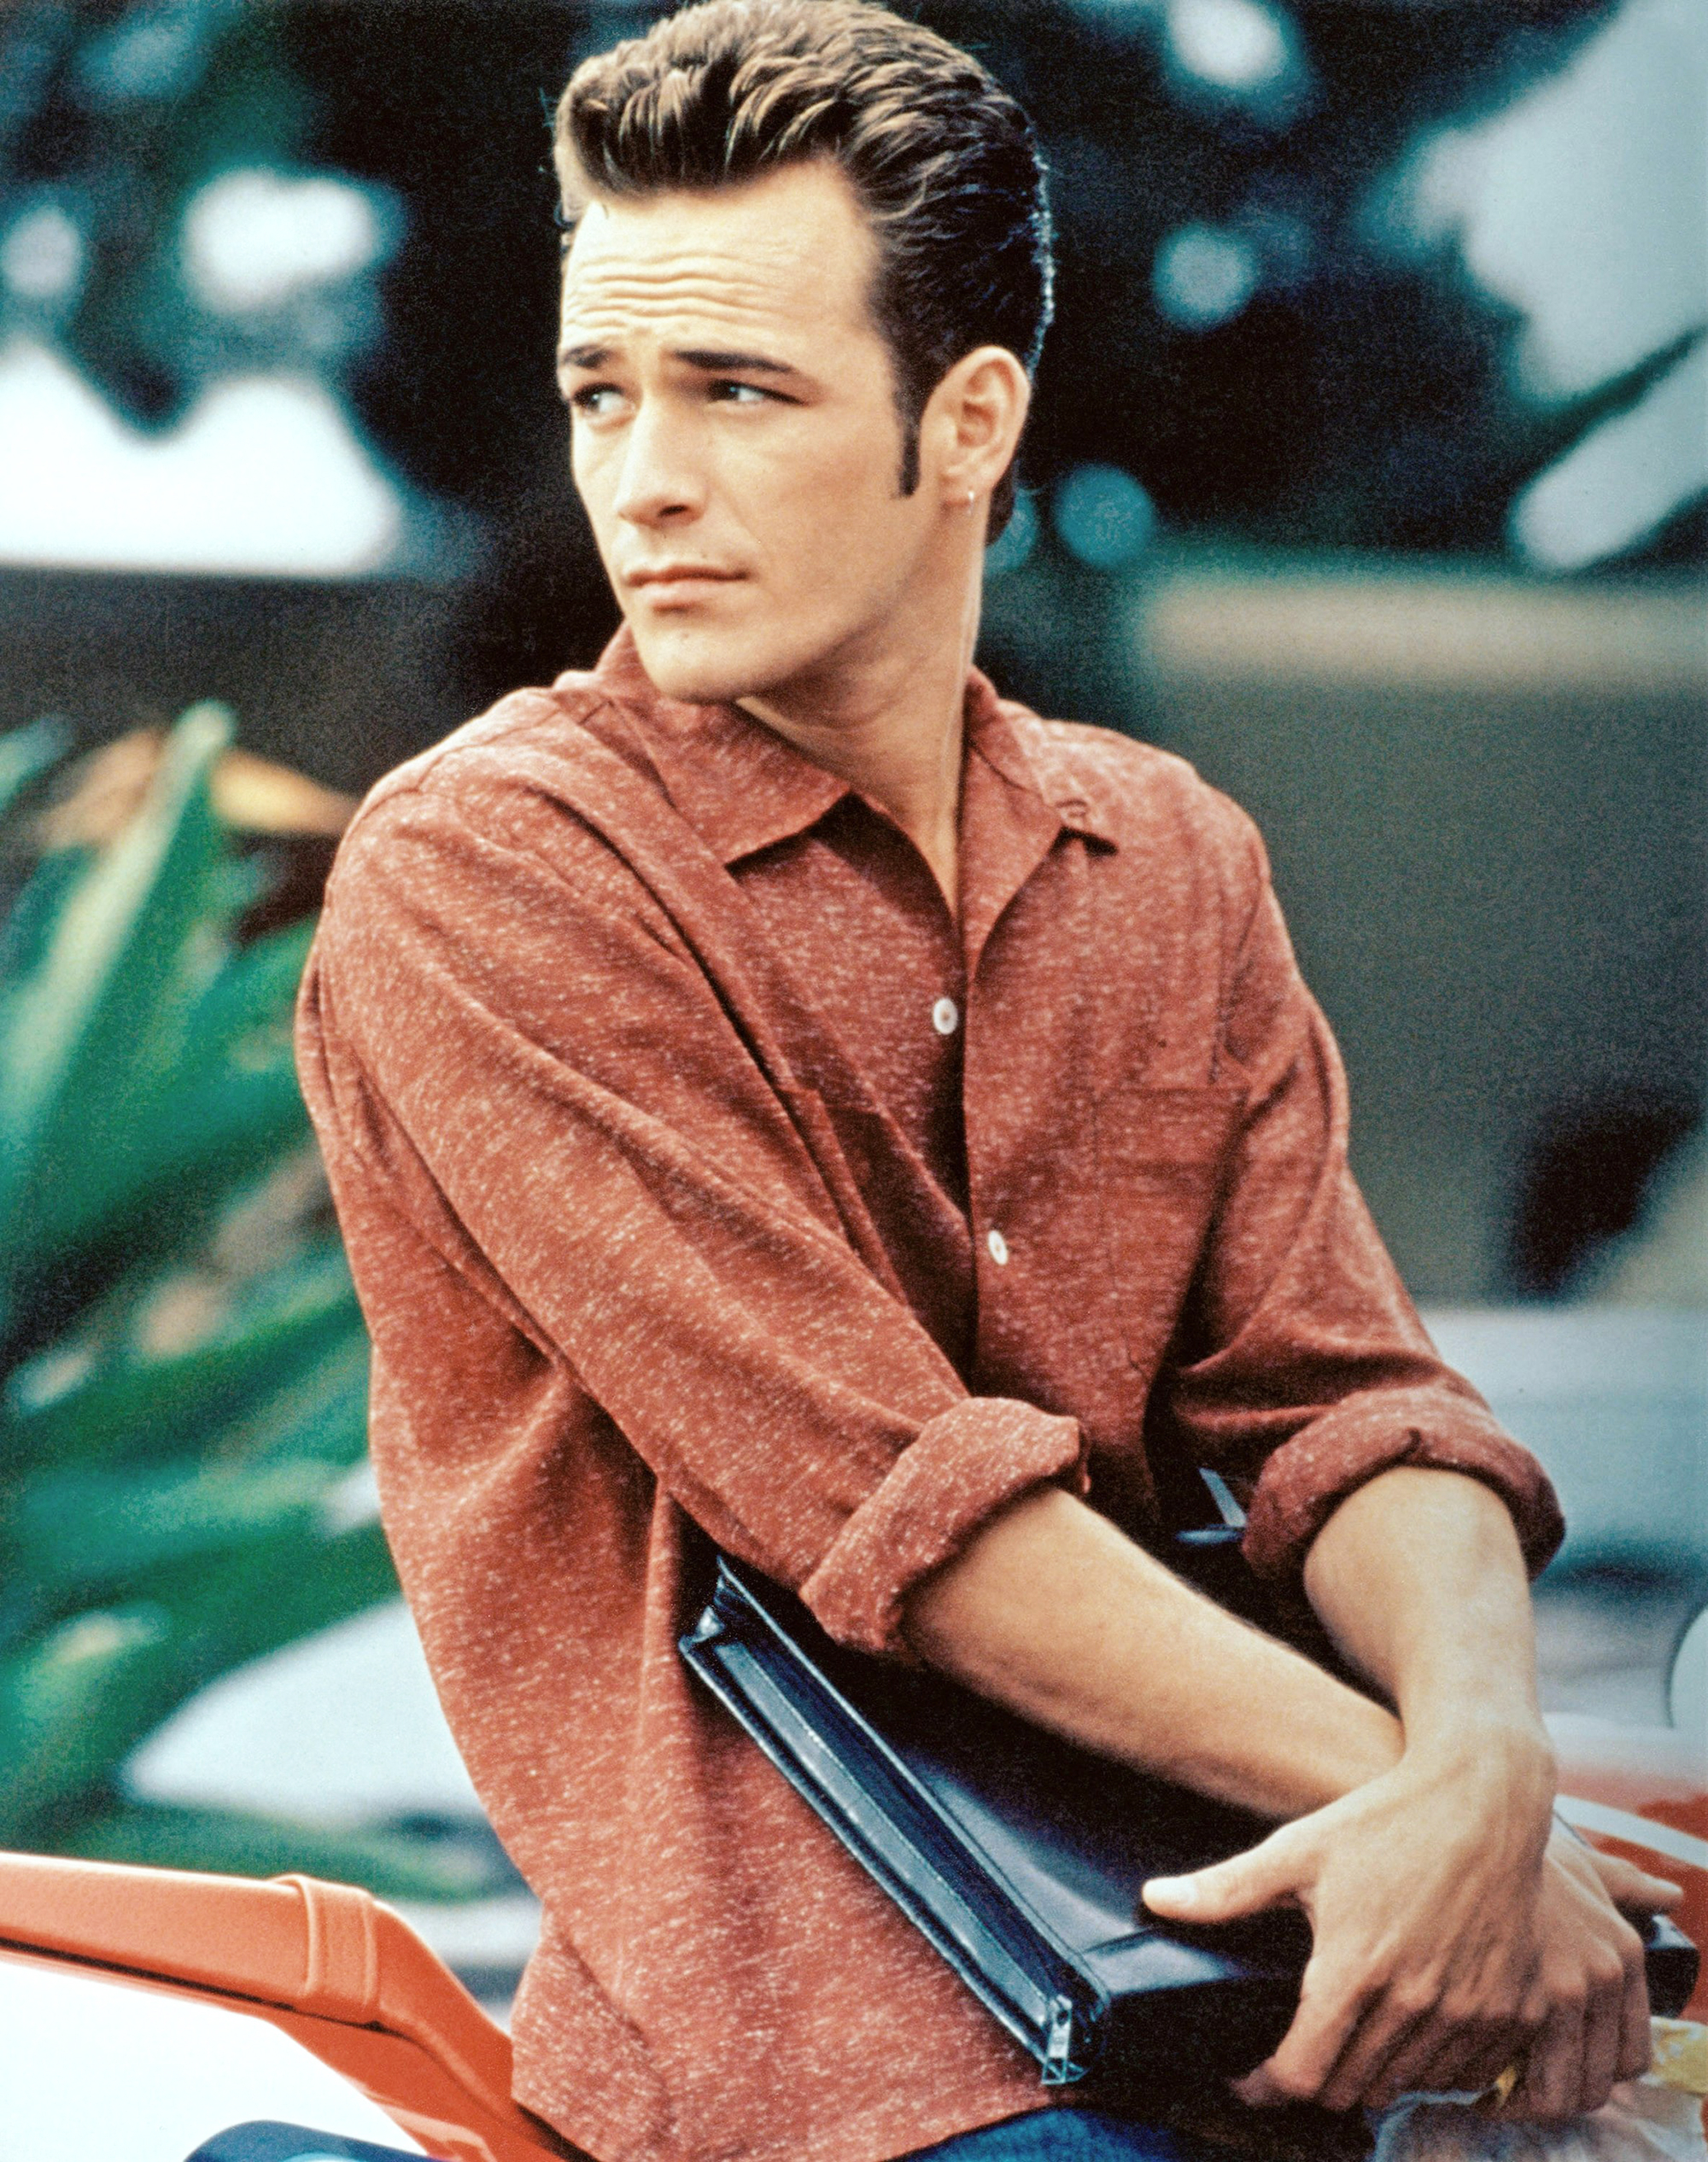 Luke Perry as Dylan McKay in Beverly Hills 90210